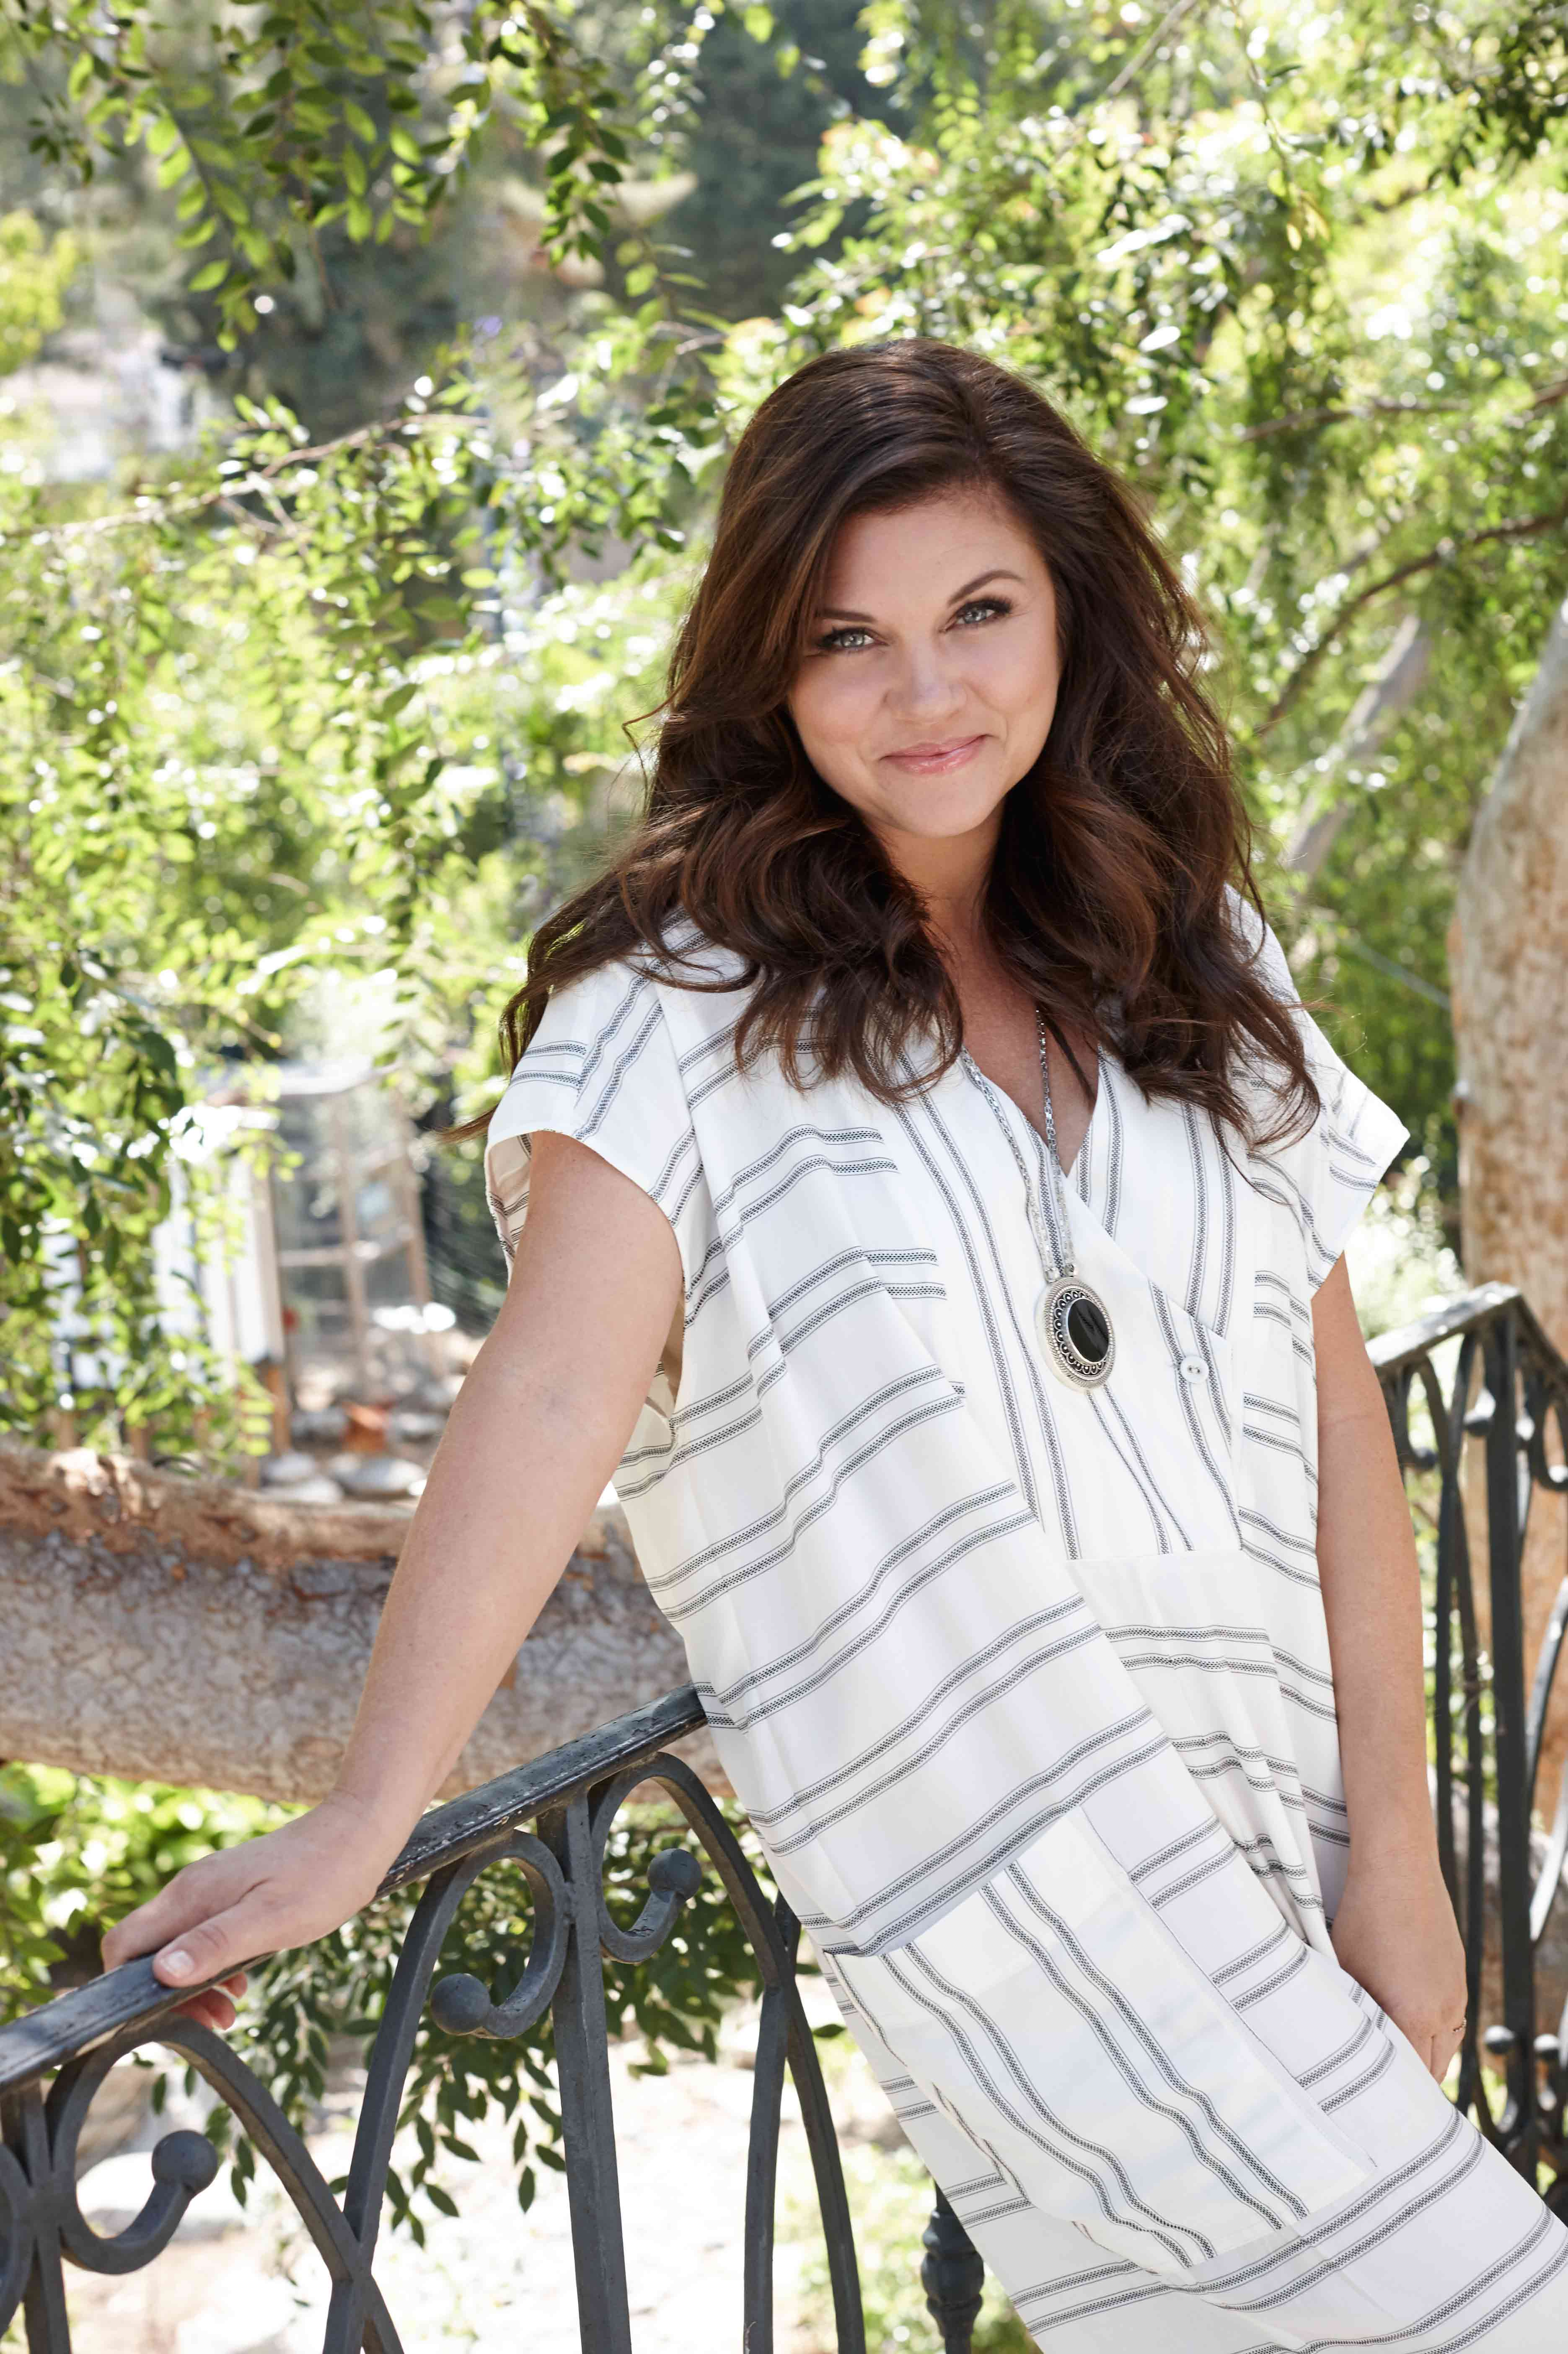 The tale of Tiffani Thiessen and Harper & Holt Smith